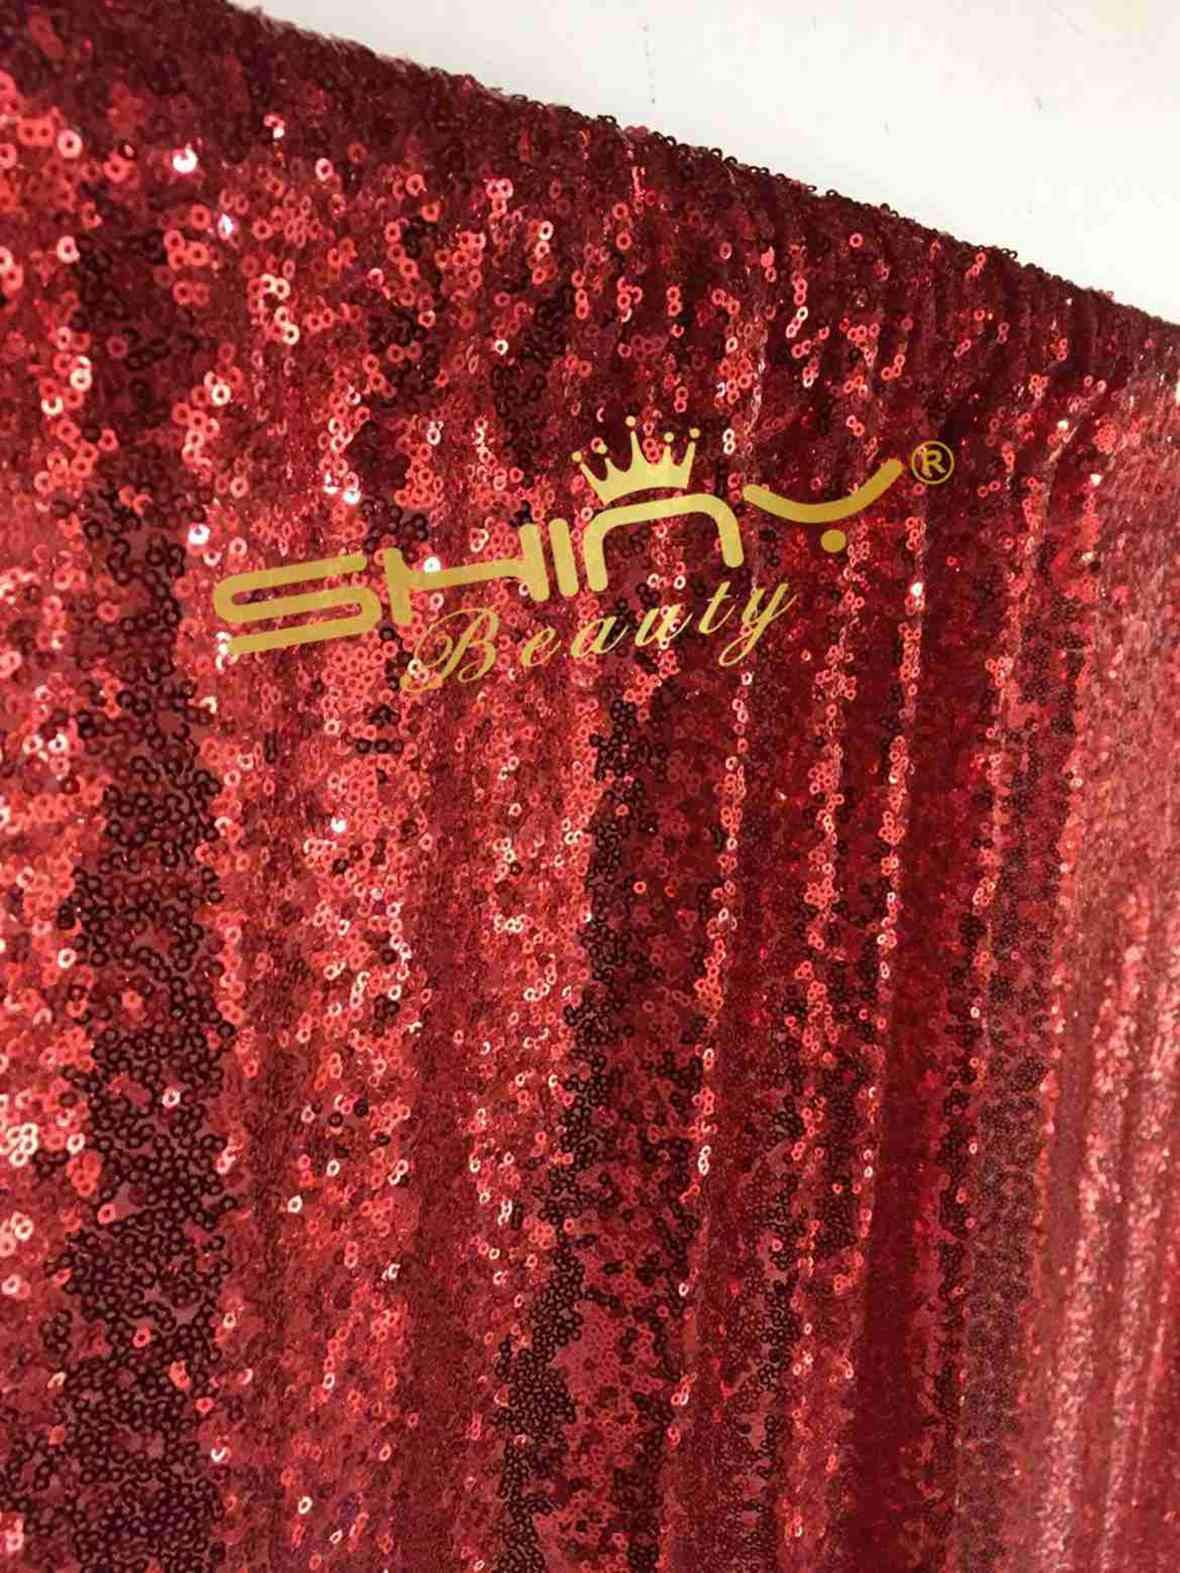 ShinyBeauty 20FTx10FT-Red-Sequin Backdrop, For Party or Wedding Sequin Photo Booth Backdrop,Wedding Backdrop, Photo Backdrop,Glitz Backdrop,Sequin Curtains by ShinyBeauty (Image #5)